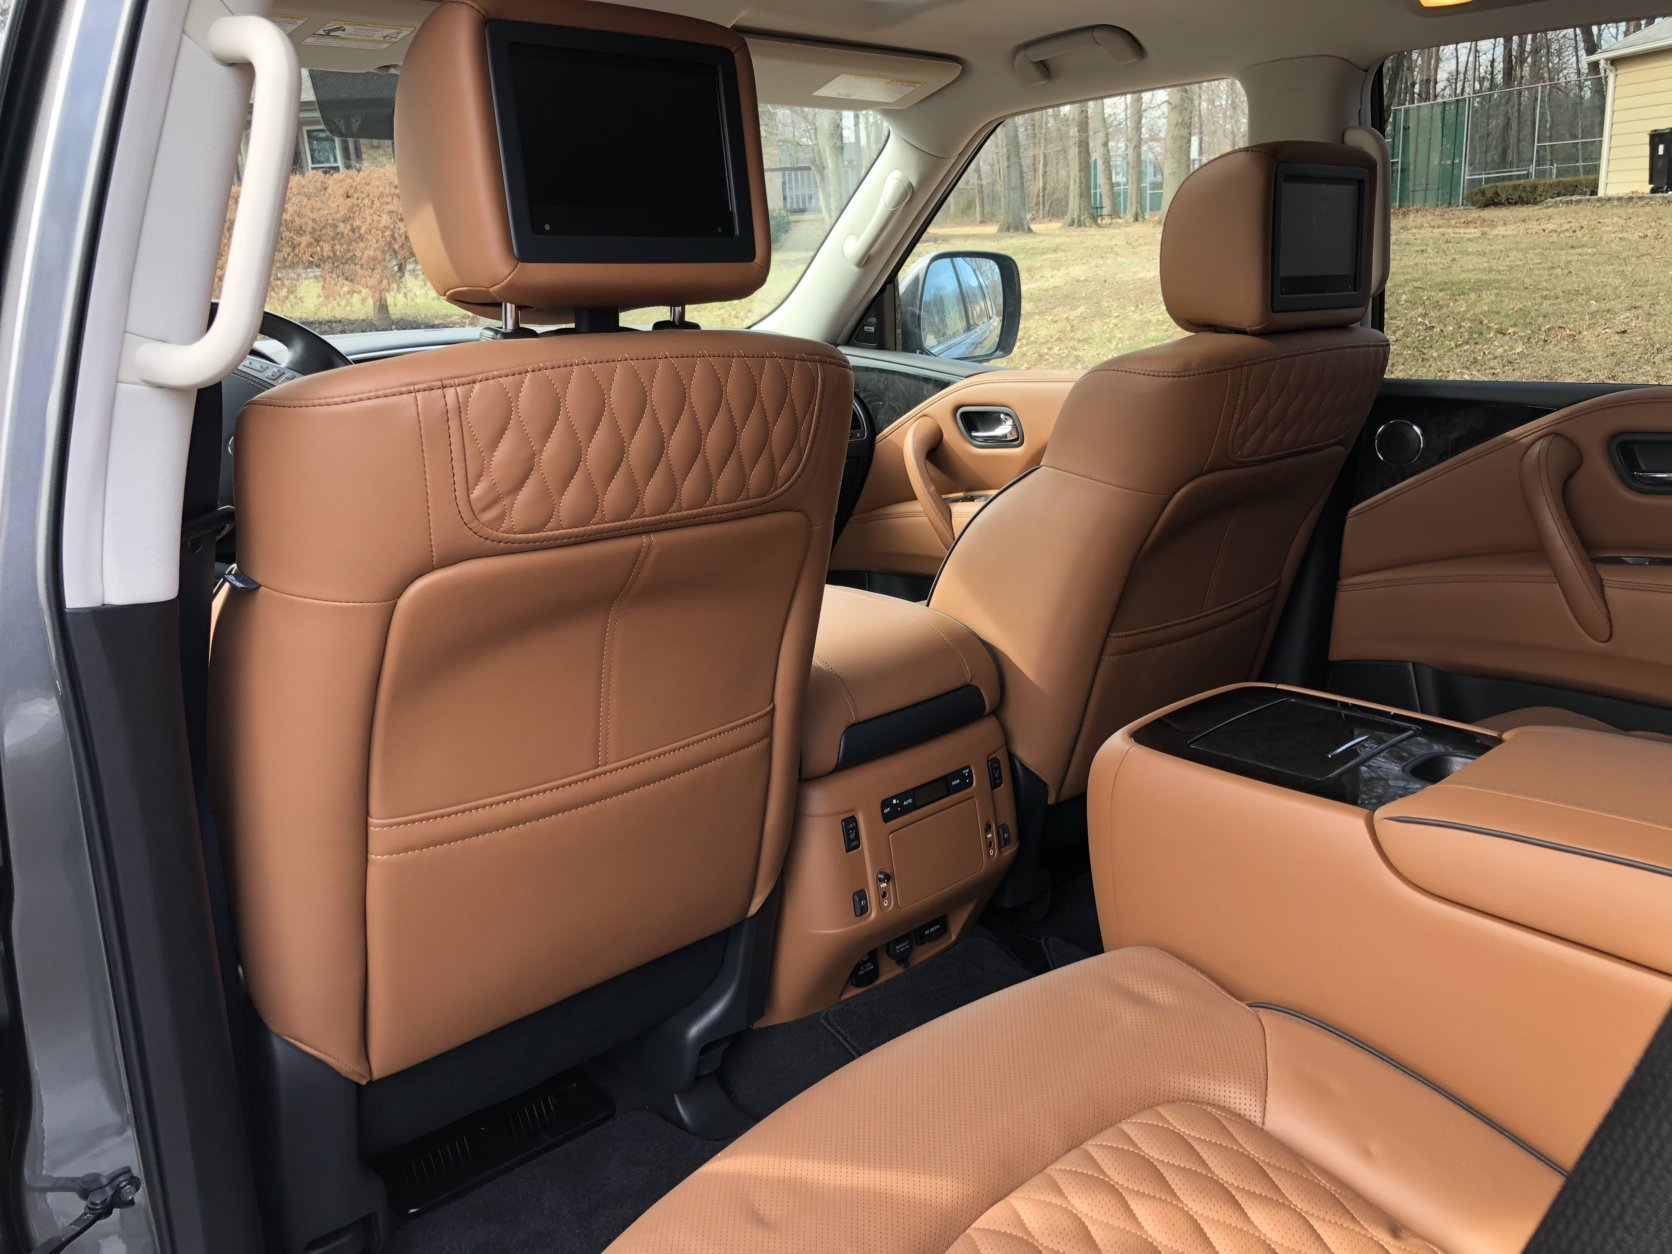 Spend $5,700 for the Deluxe Technology Package for the semi-aniline leather seats with heat and ventilation. (WTOP/Mike Parris)